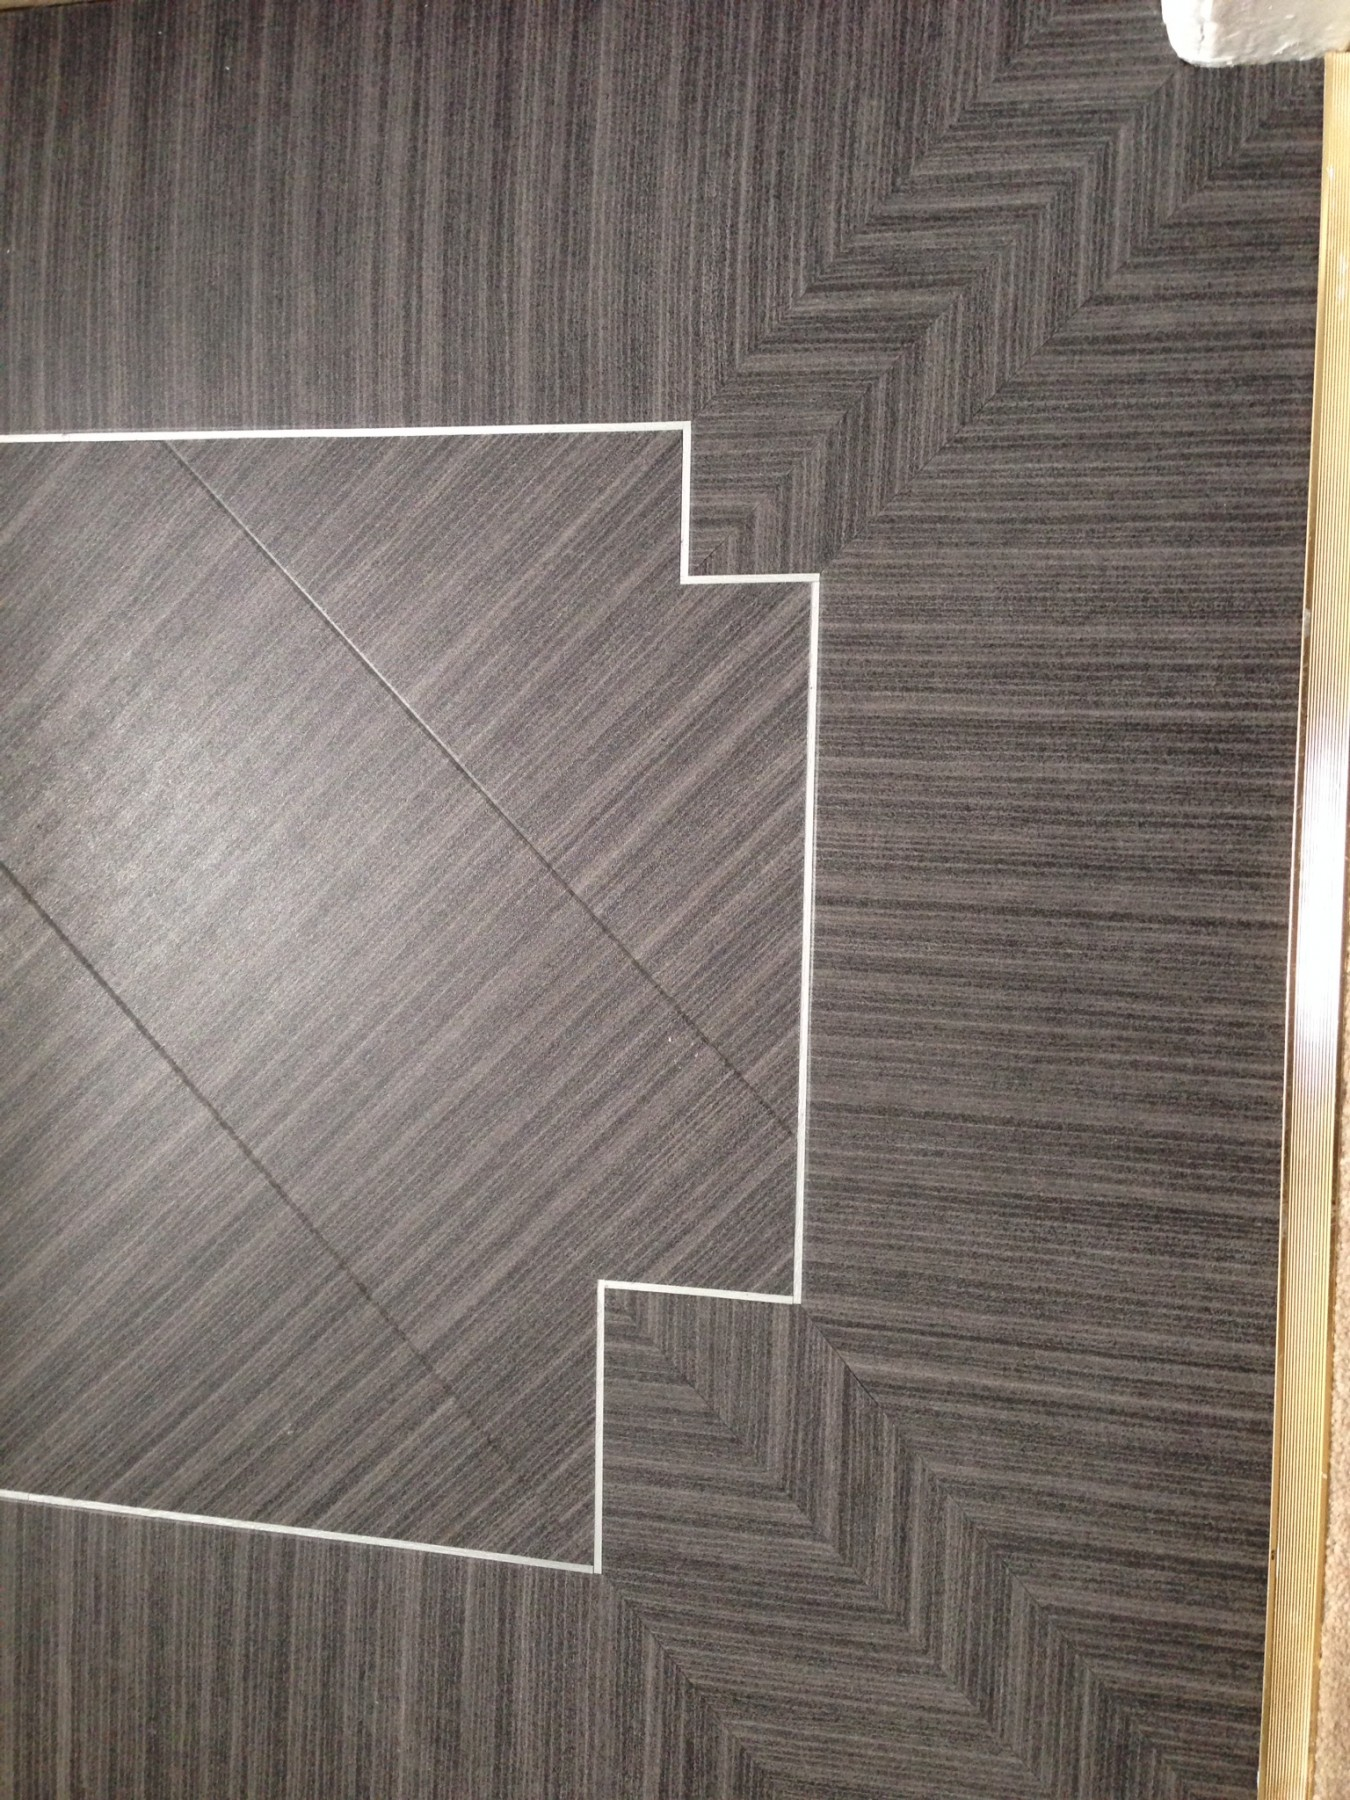 Patterned beige flooring with a white pattern